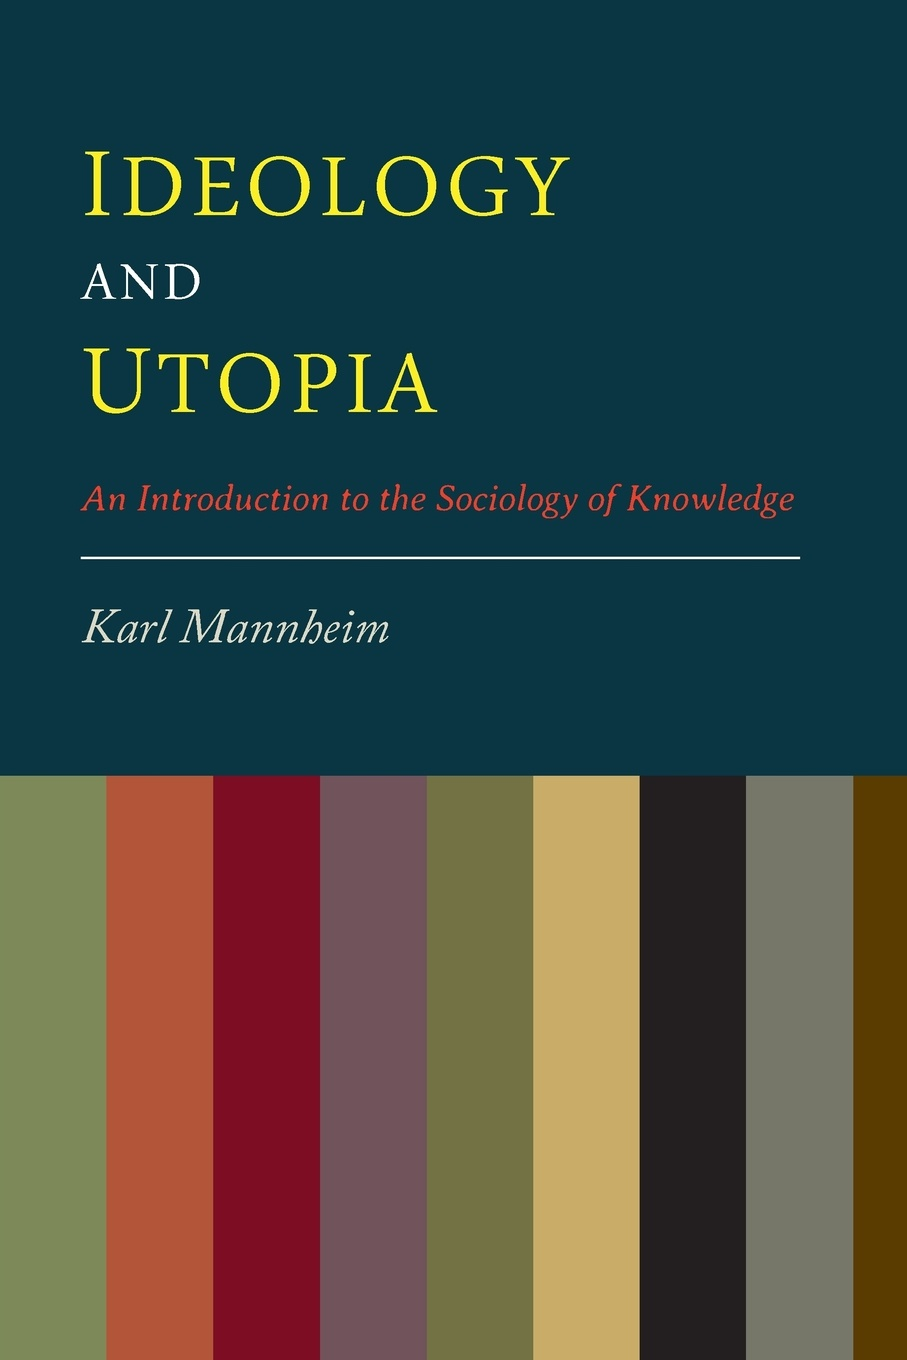 Karl Mannheim, Louis Wirth, Edward Shils Ideology And Utopia. An Introduction to the Sociology of Knowledge